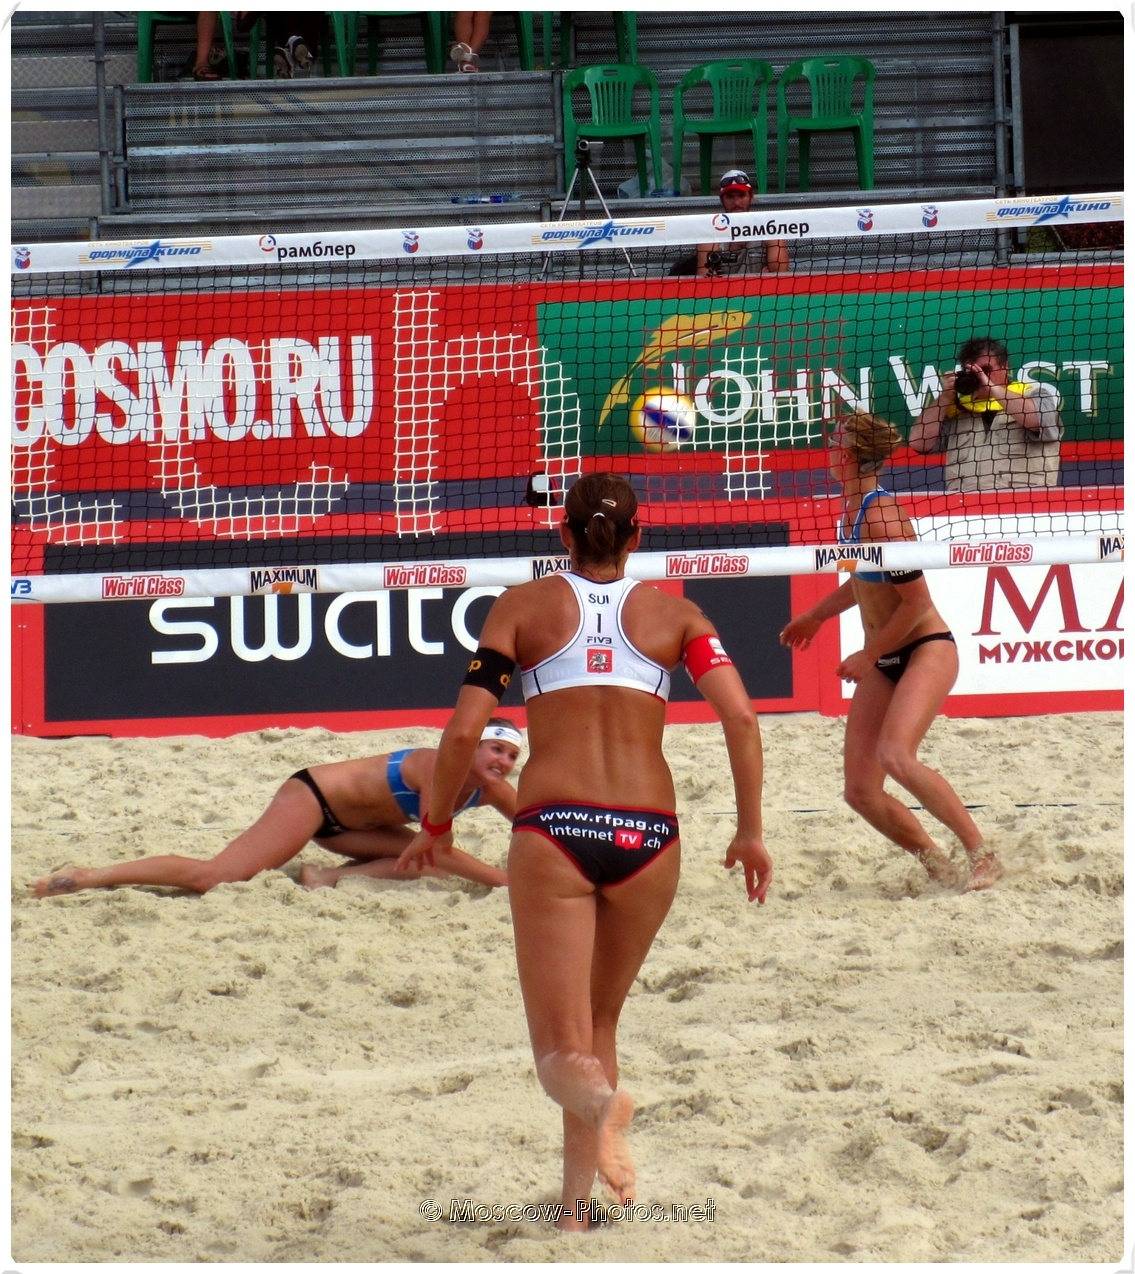 BEACH VOLLEYBALL MOVING DEFENSE